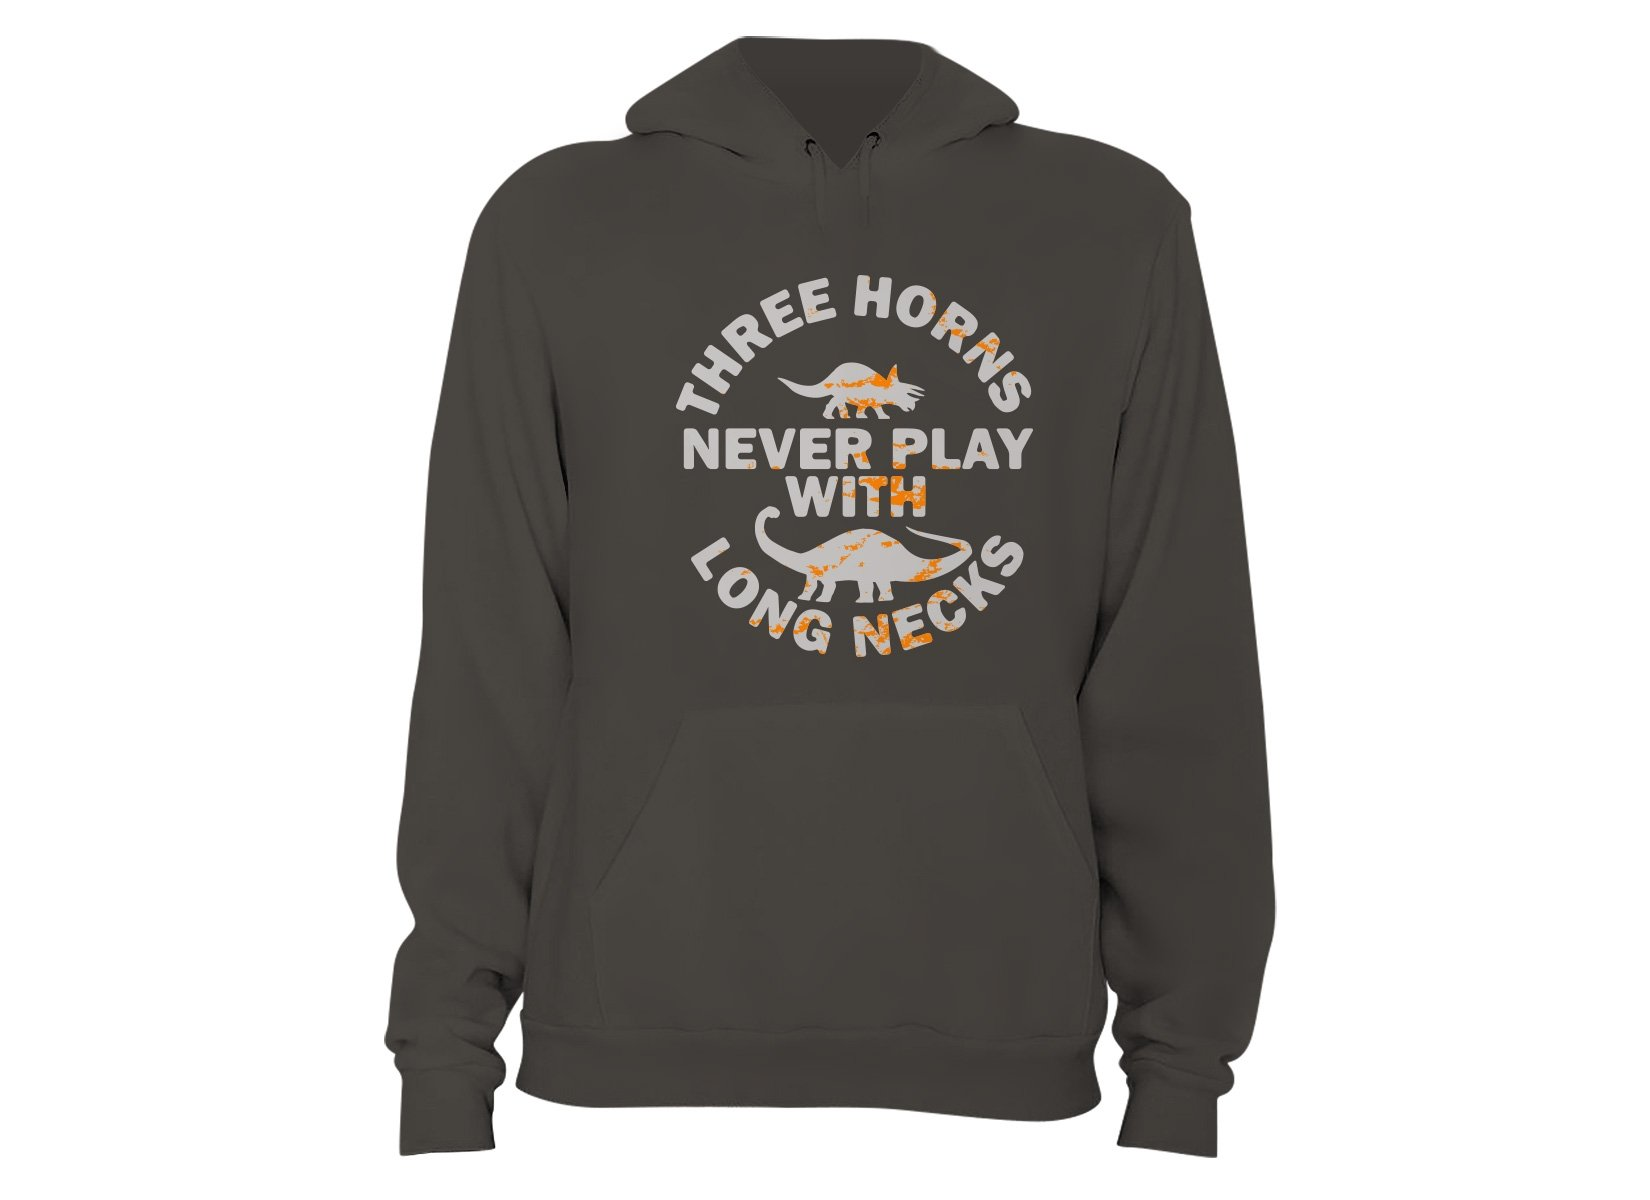 Three Horns Never Play With Long Necks on Hoodie